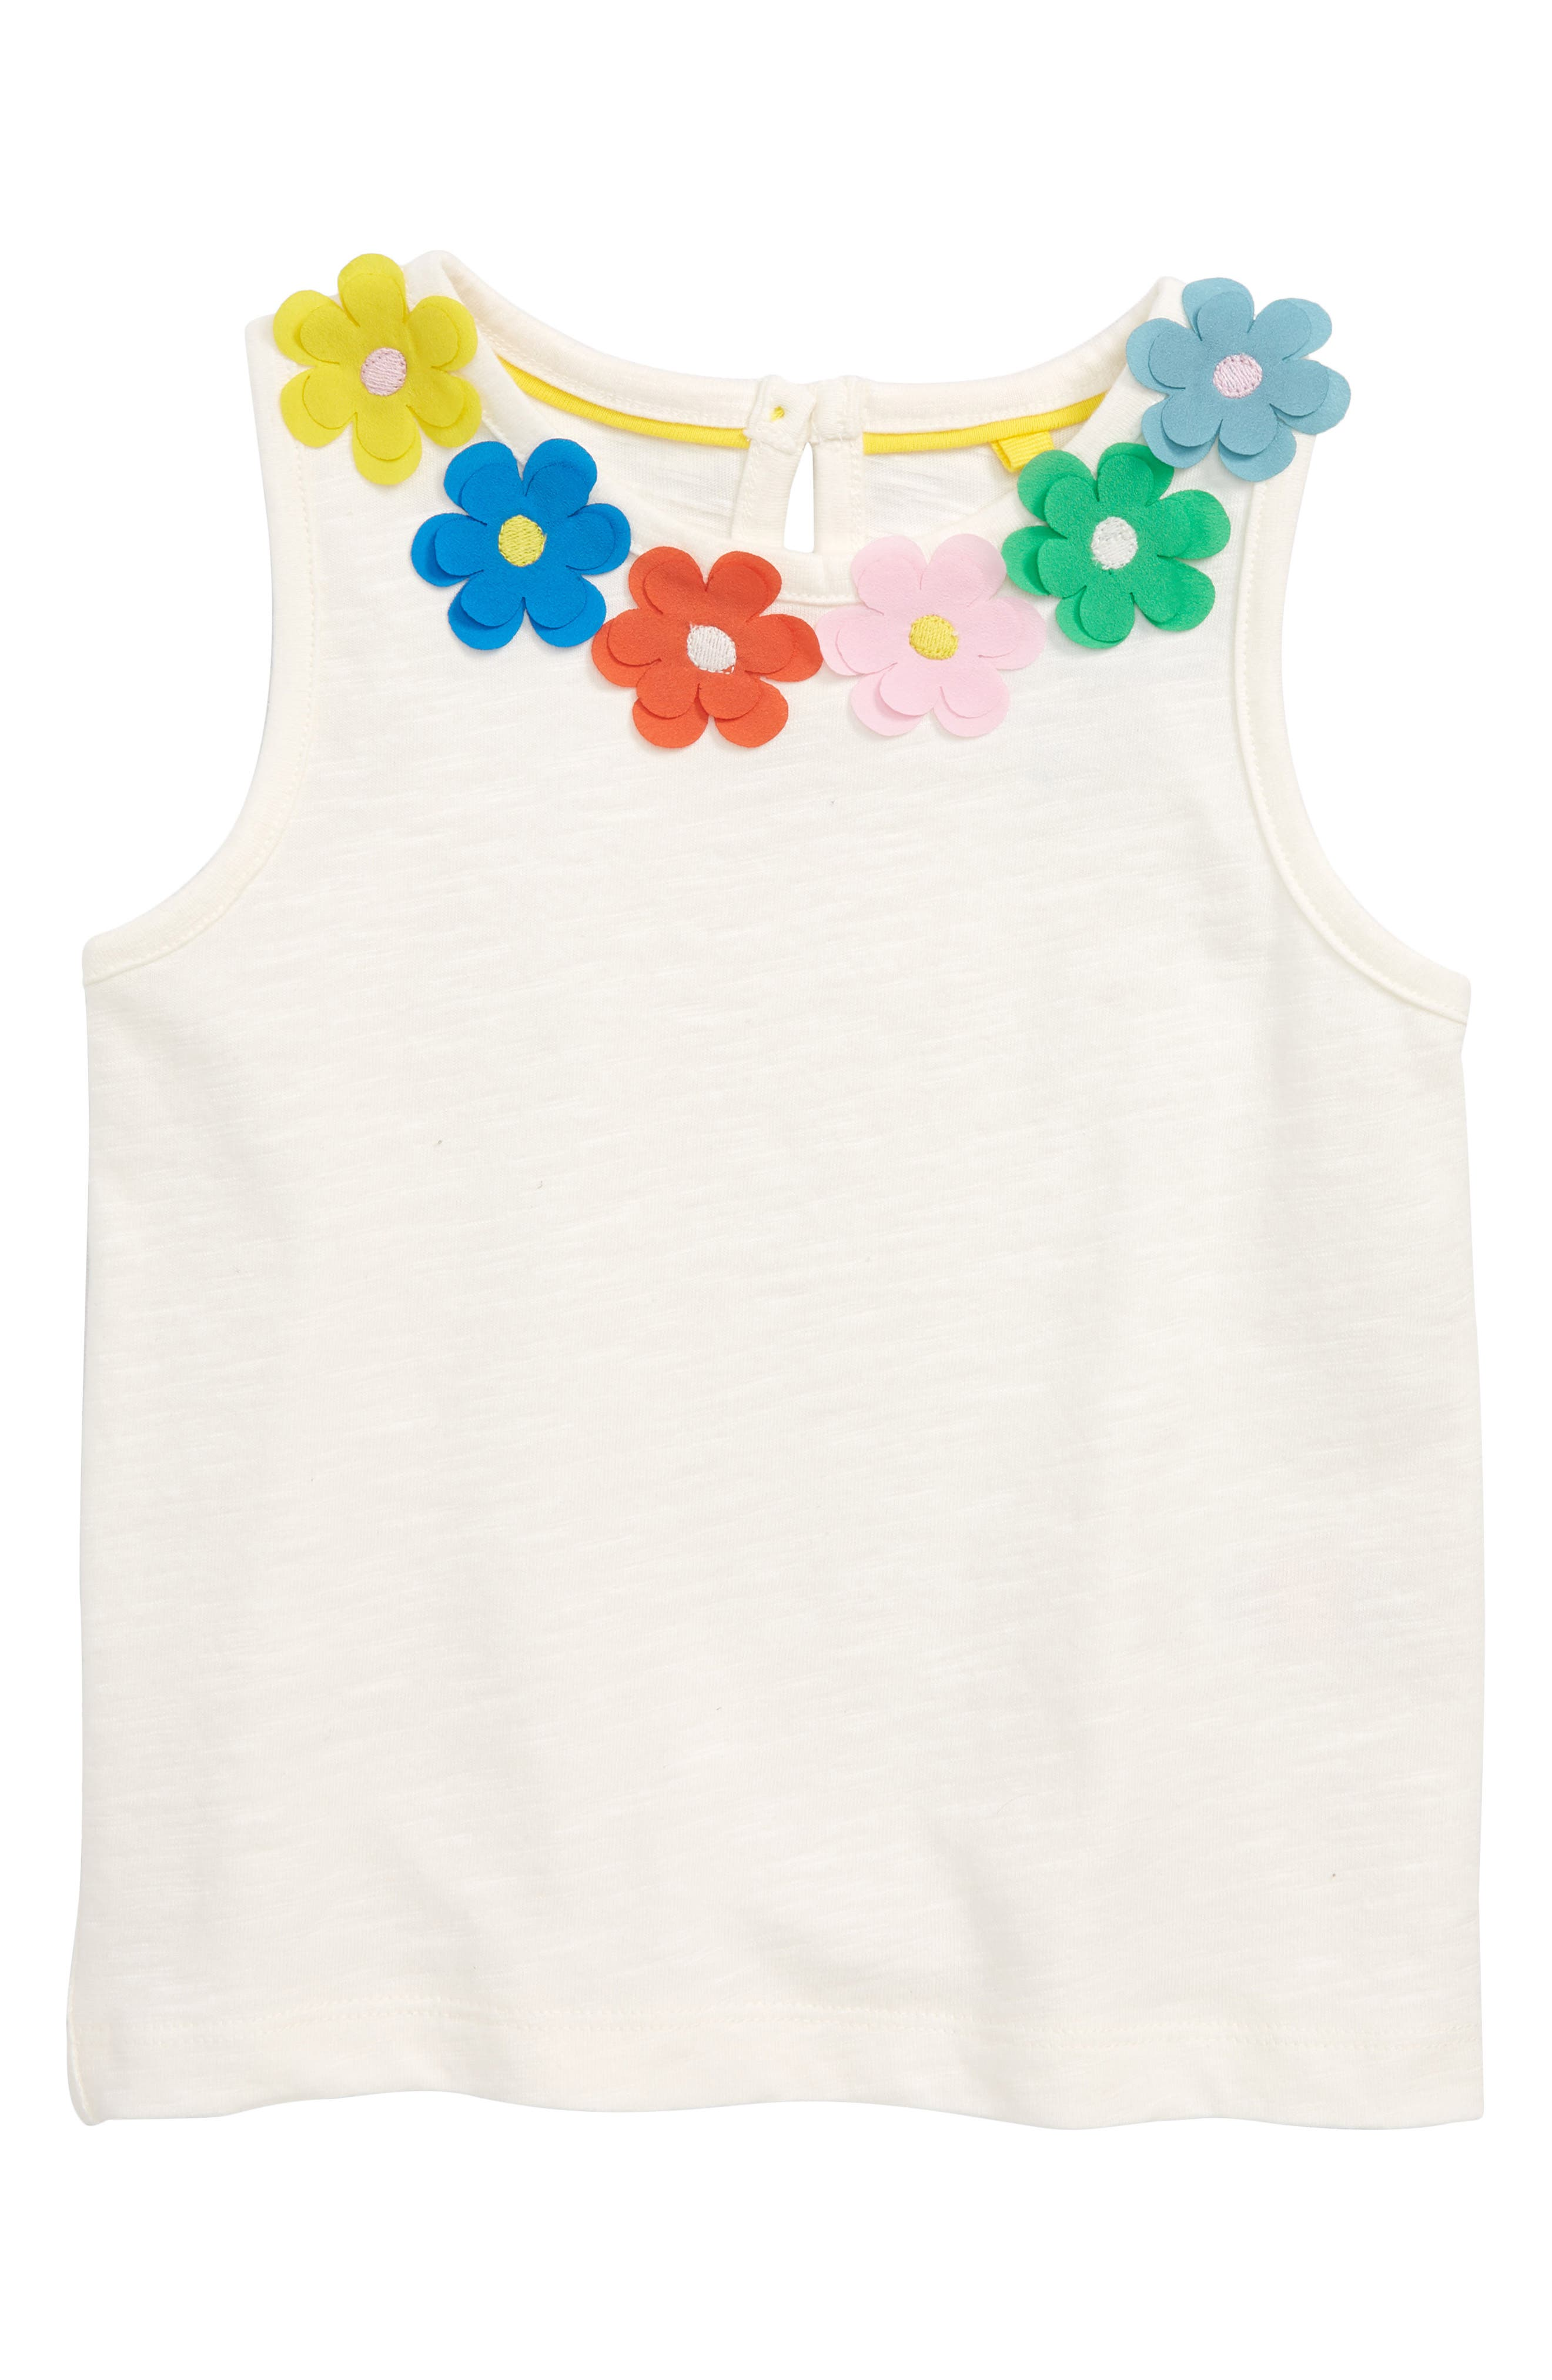 Flower Power Tank,                             Main thumbnail 1, color,                             Ivoivory/ Multi Daisies